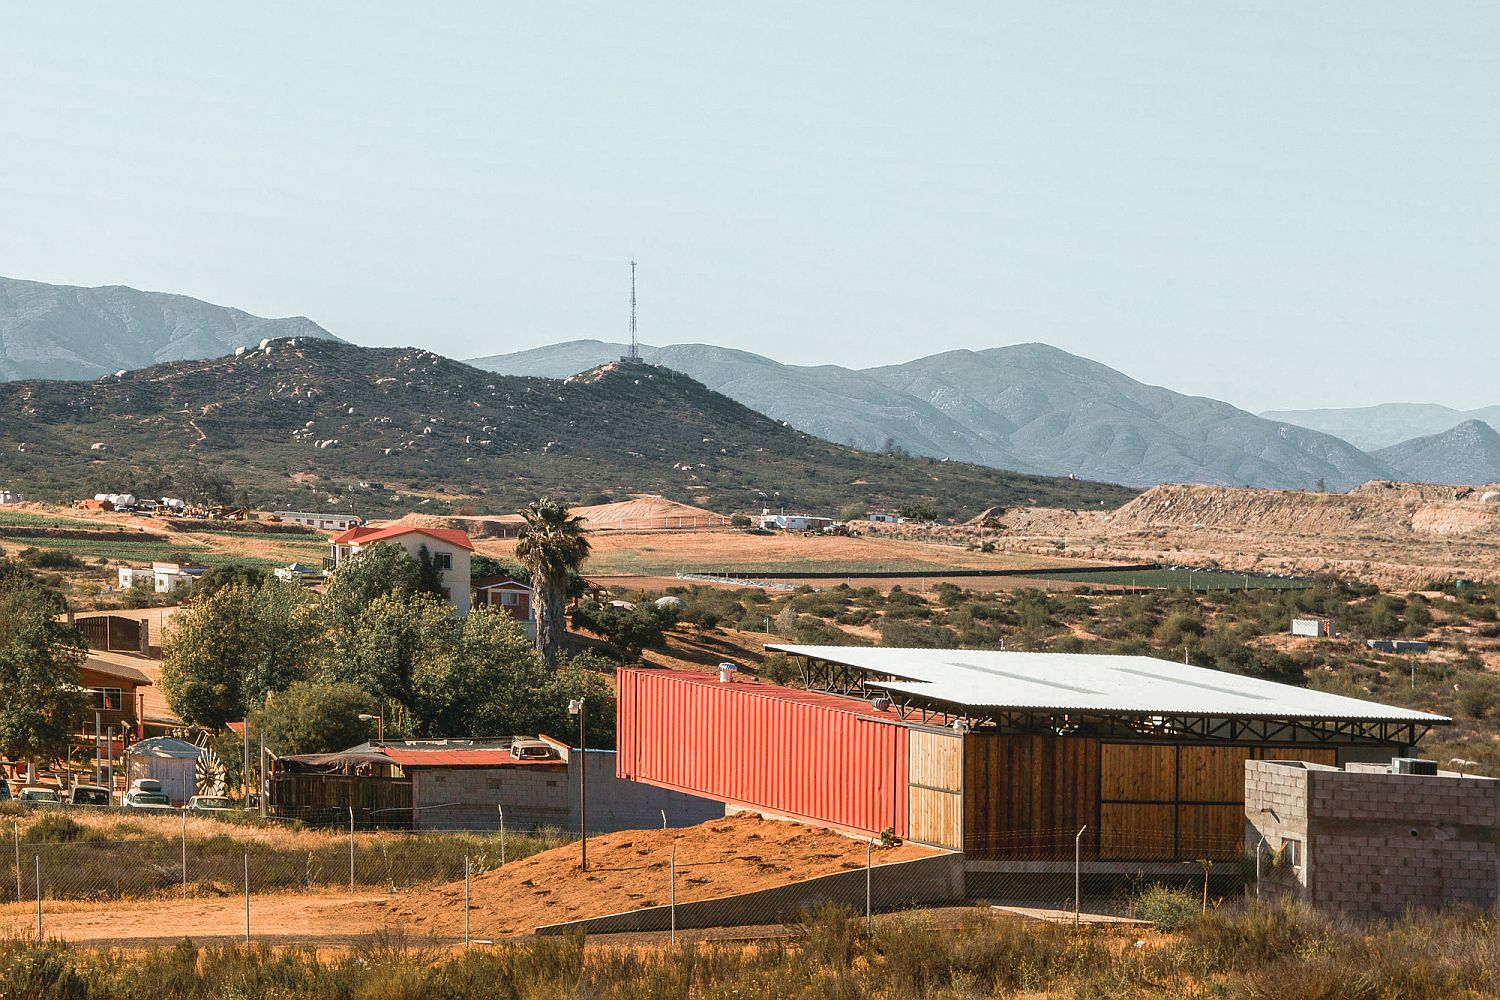 Fabulous contemporary winery at the heart of Mexico's wine country